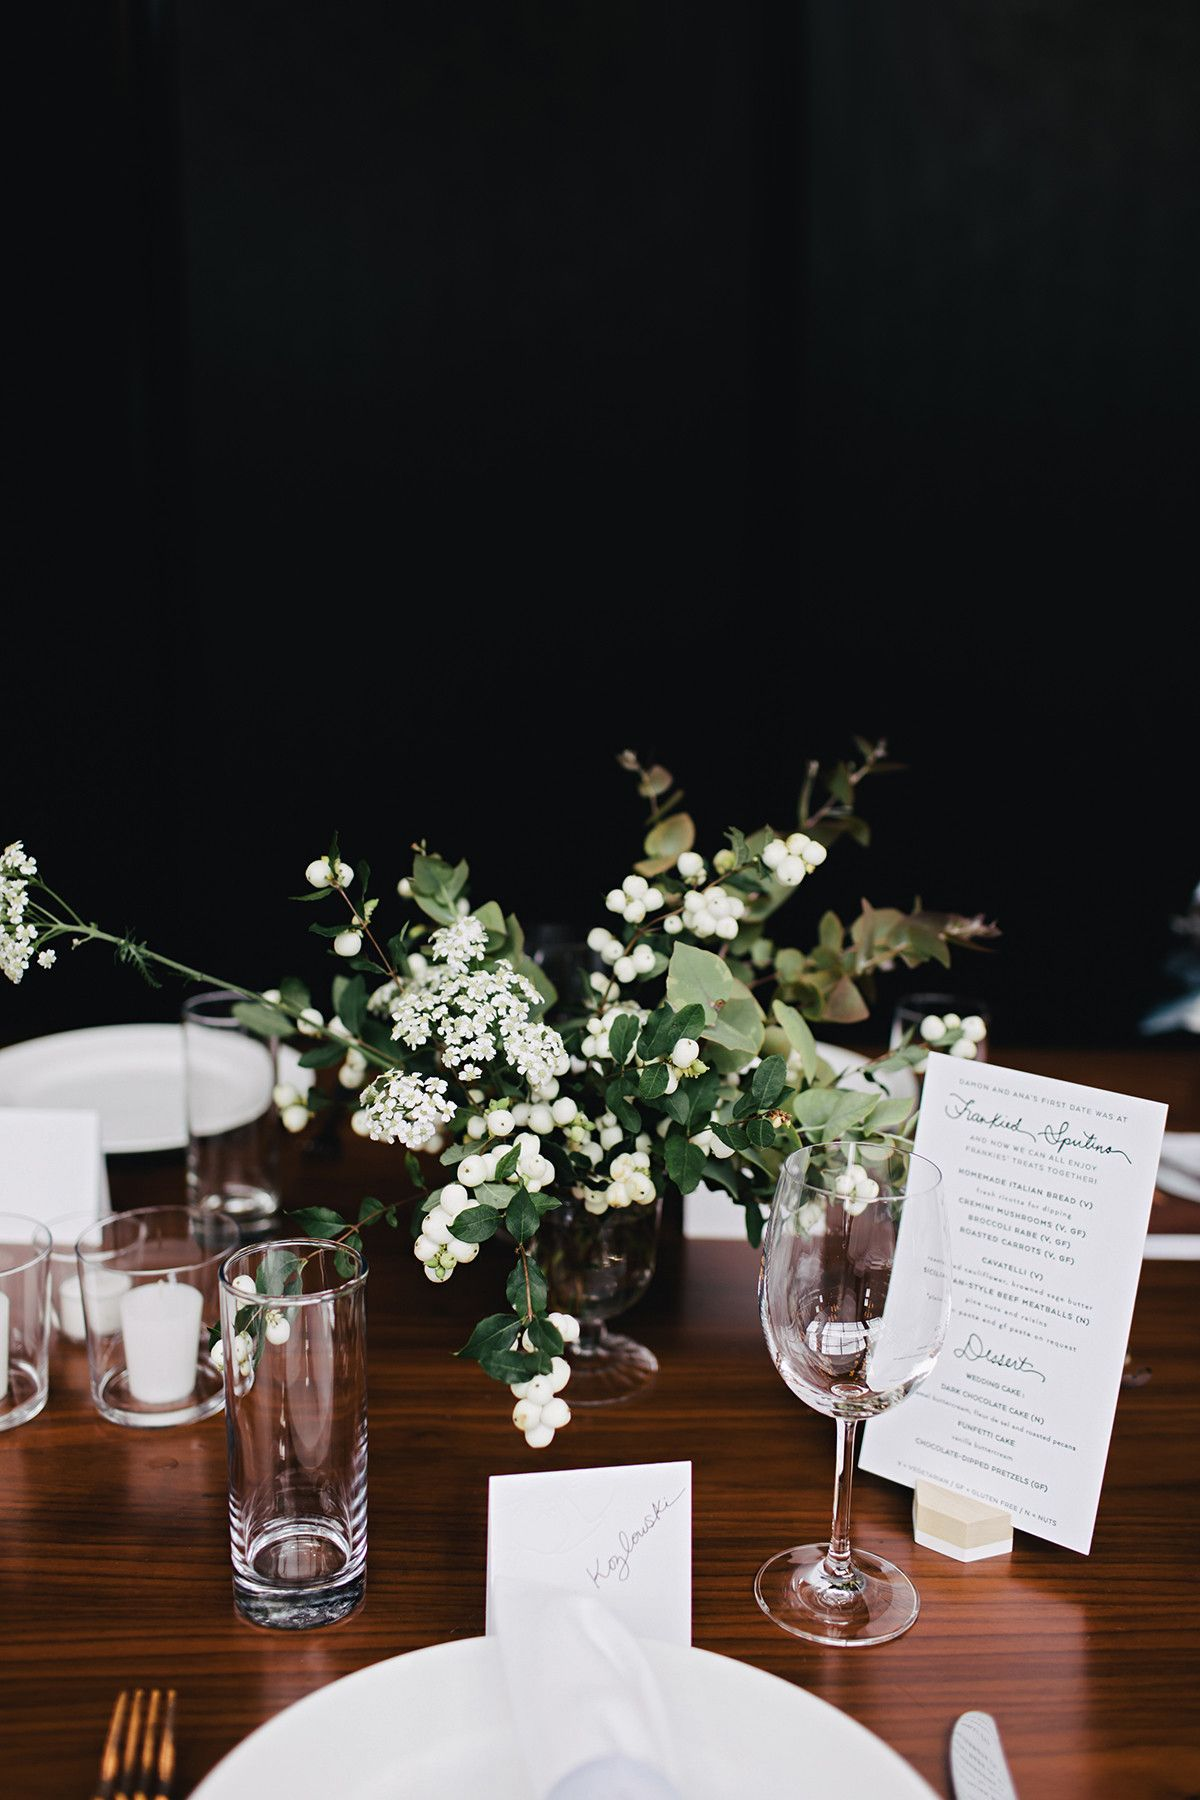 Wedding decorations venue october 2018 Wide farm tables were set with all white flowers and berries votive